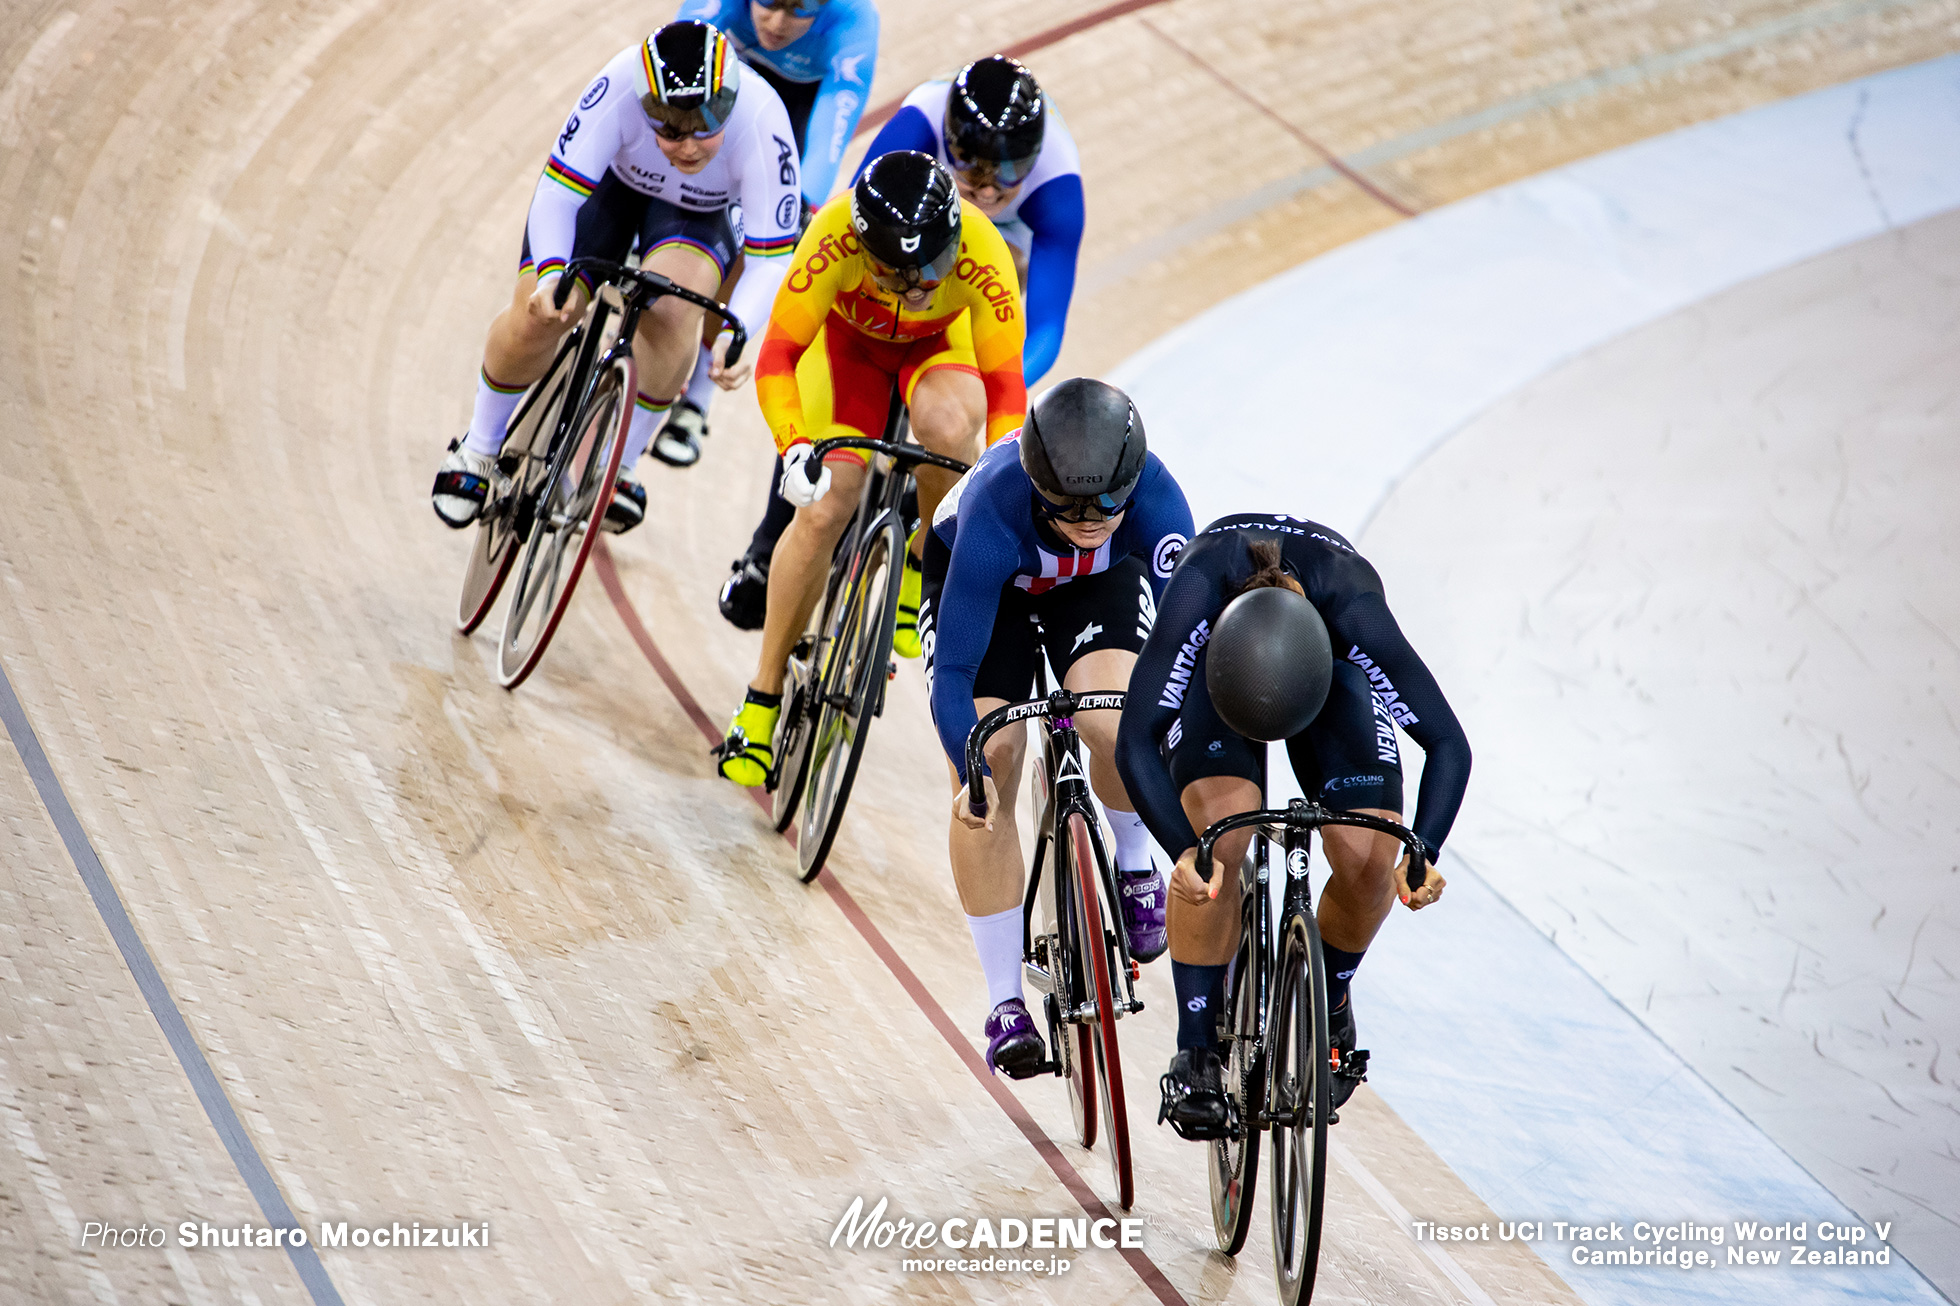 Final / Women's Keirin / Track Cycling World Cup V / Cambridge, New Zealand